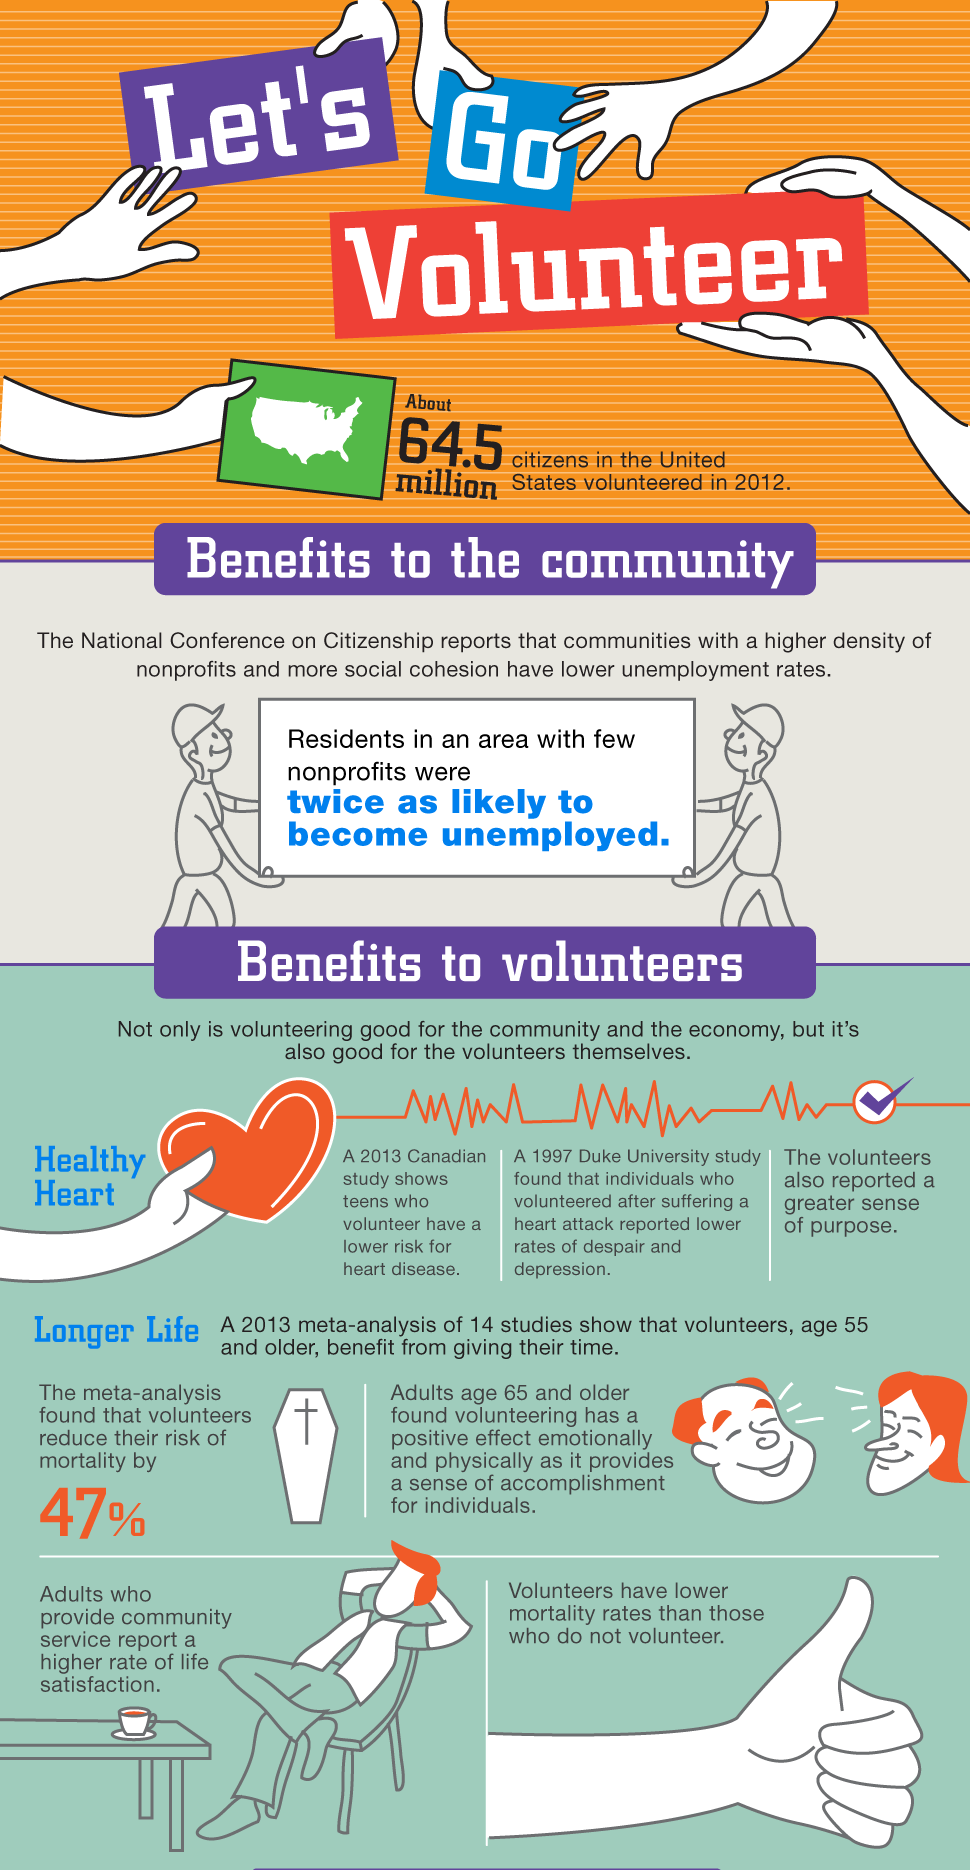 benefits of volunteering for the individual